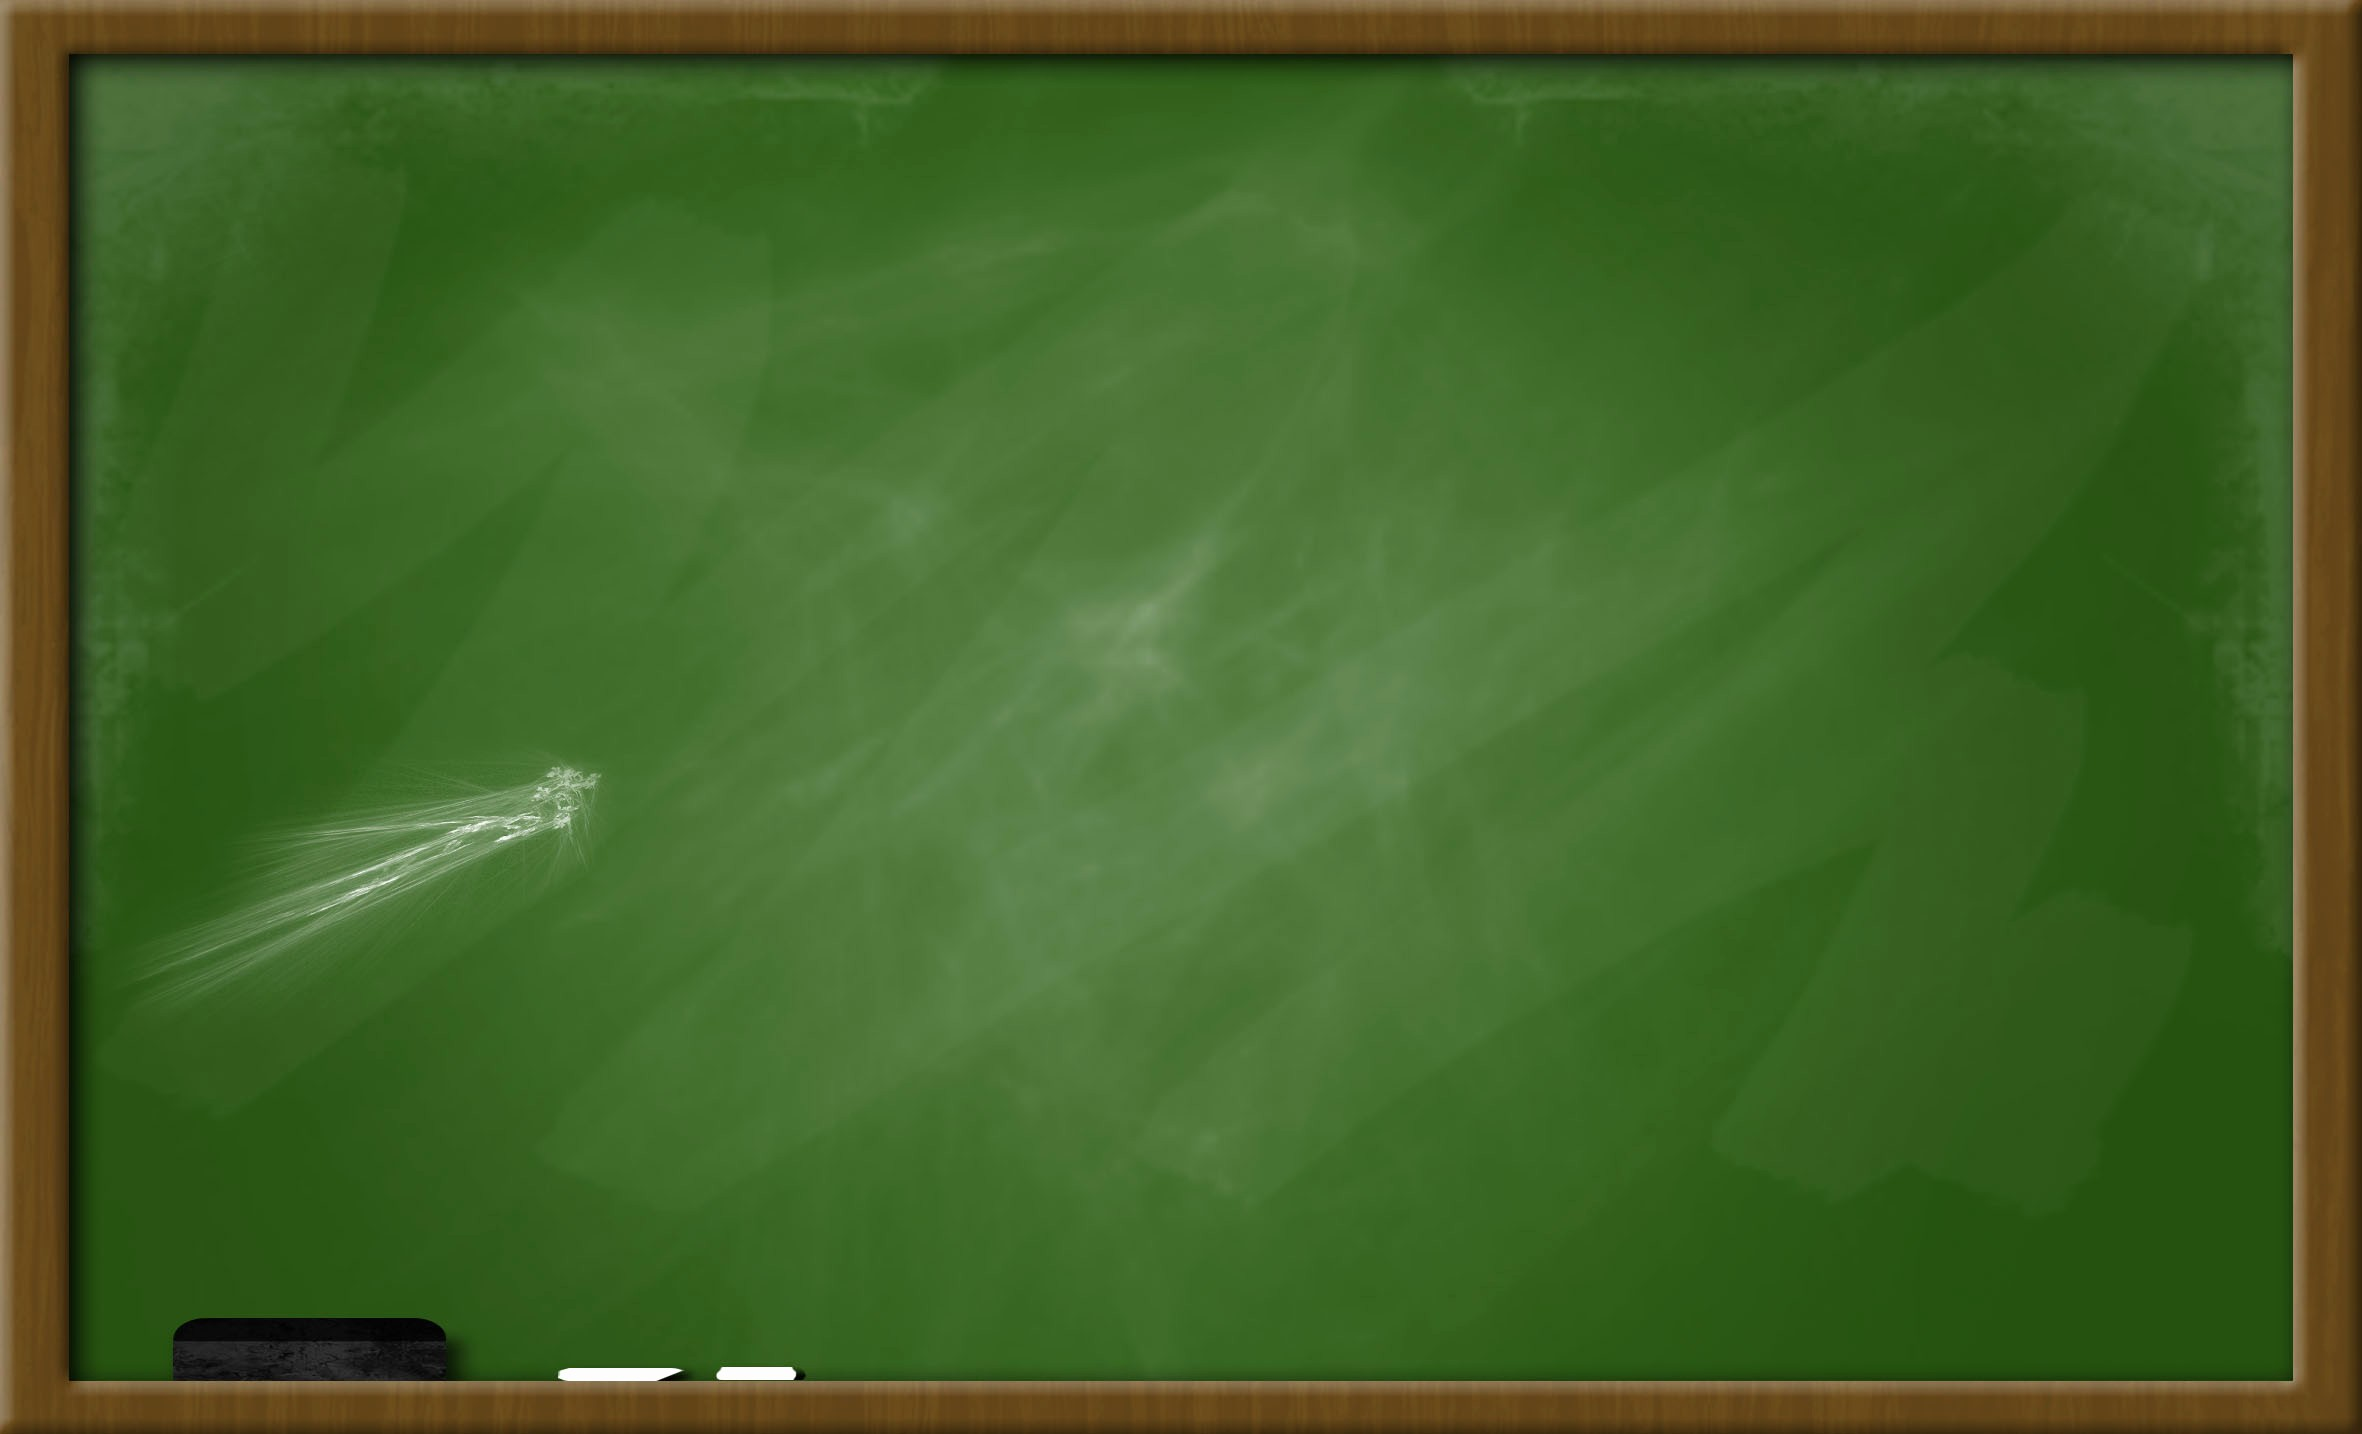 Cute School Backgrounds for Powerpoint Best Of Chalkboard Backgrounds Free Download